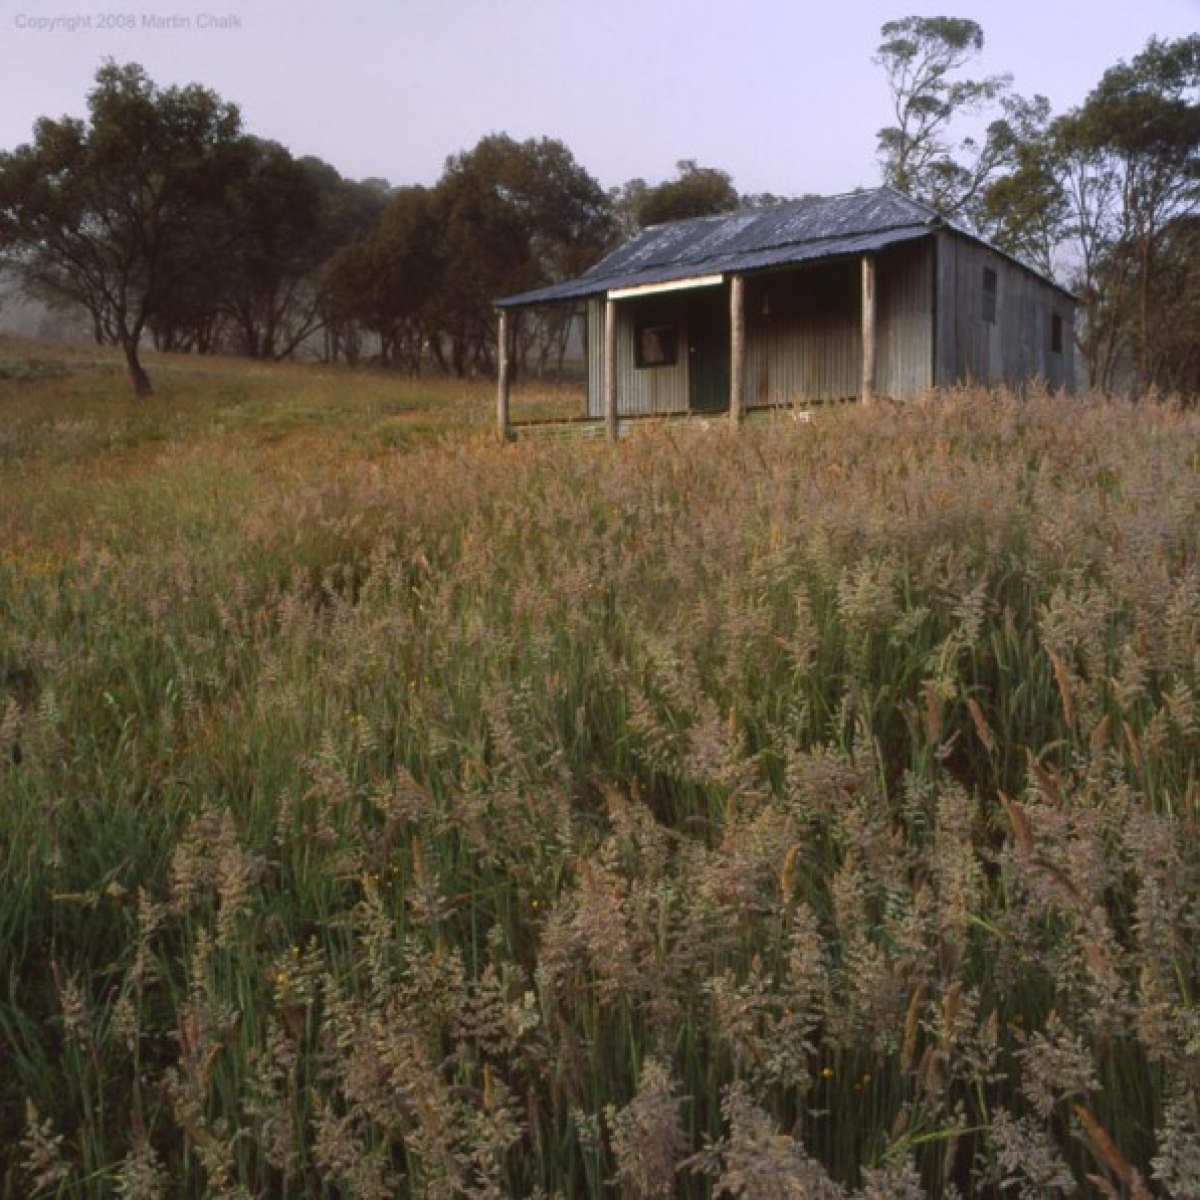 Dawn at Townsend's Hut